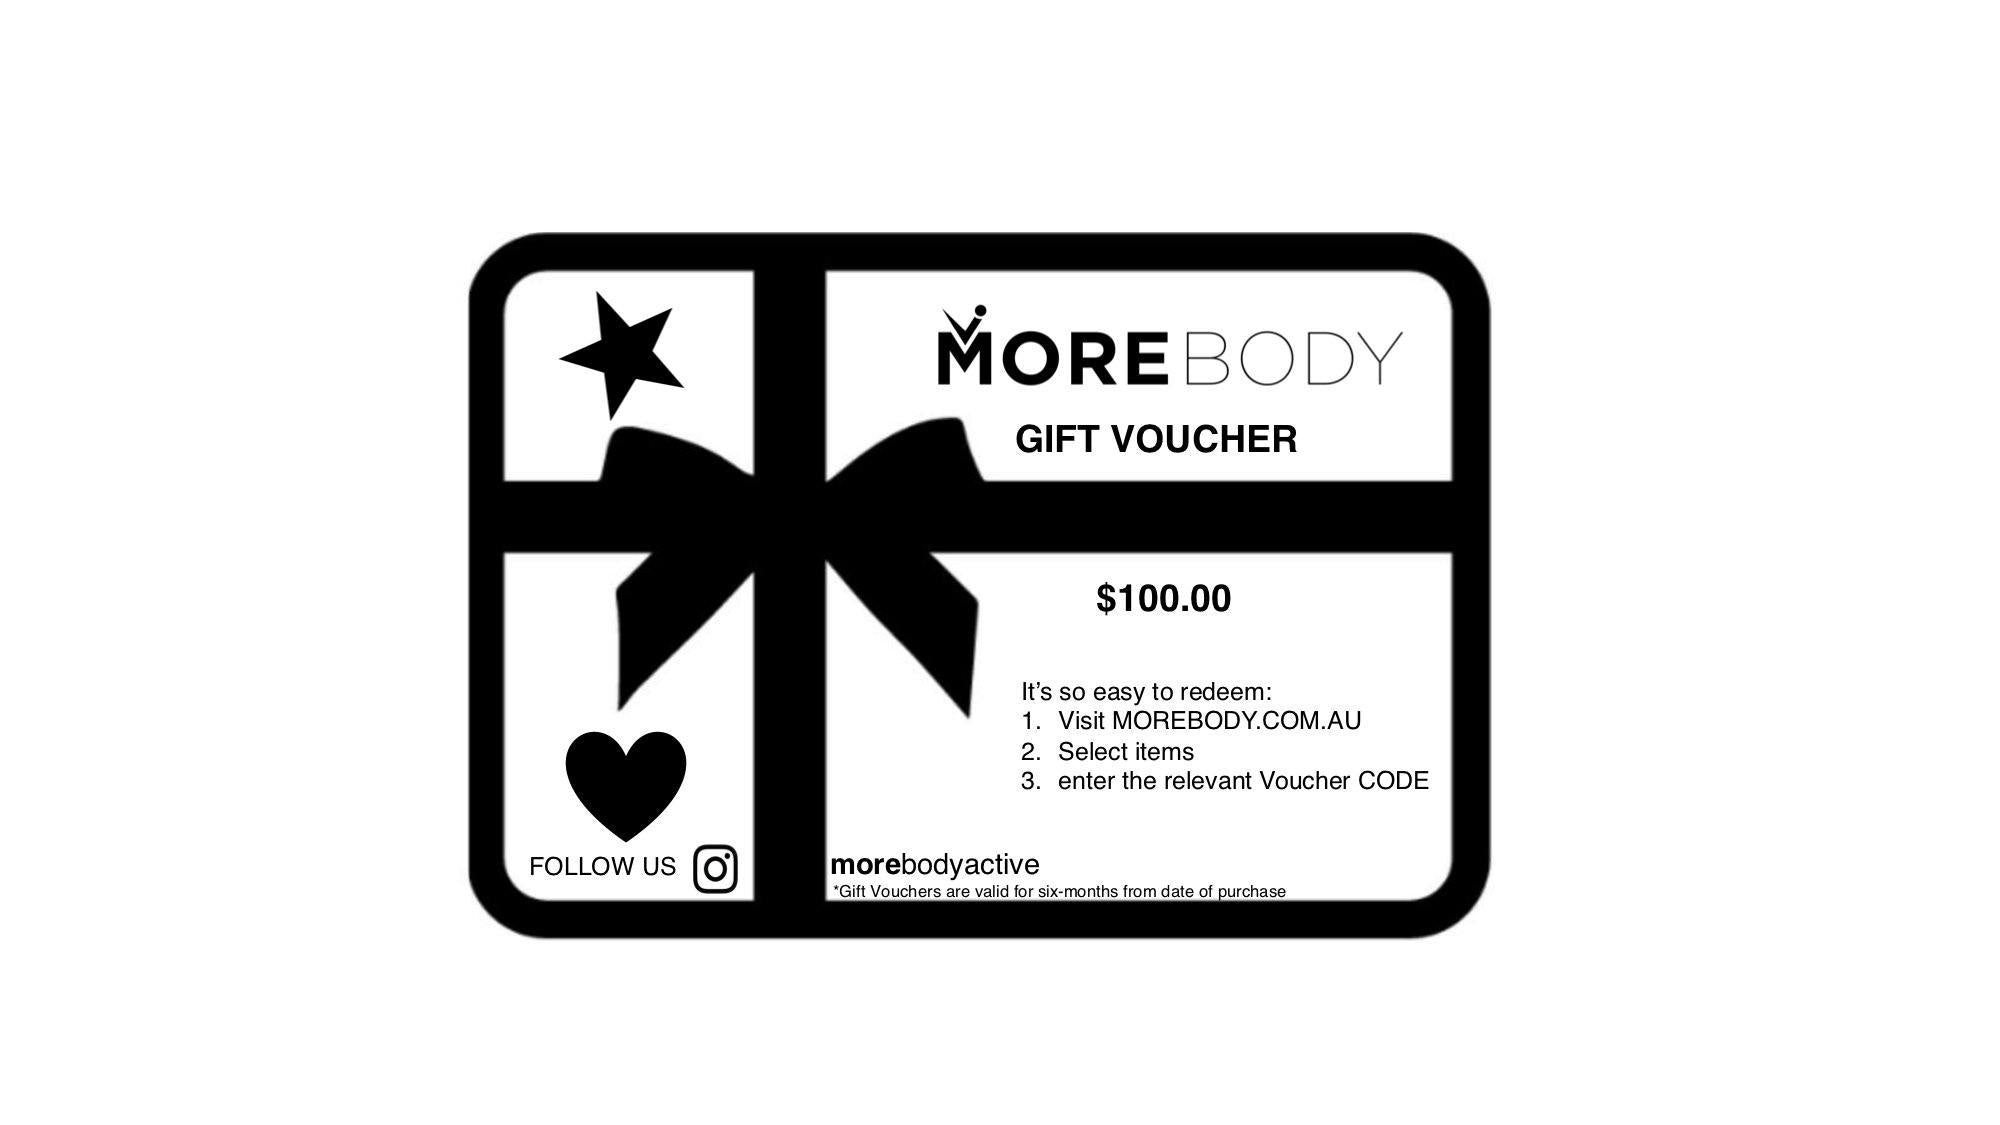 Gift Voucher $100.00 - More Body